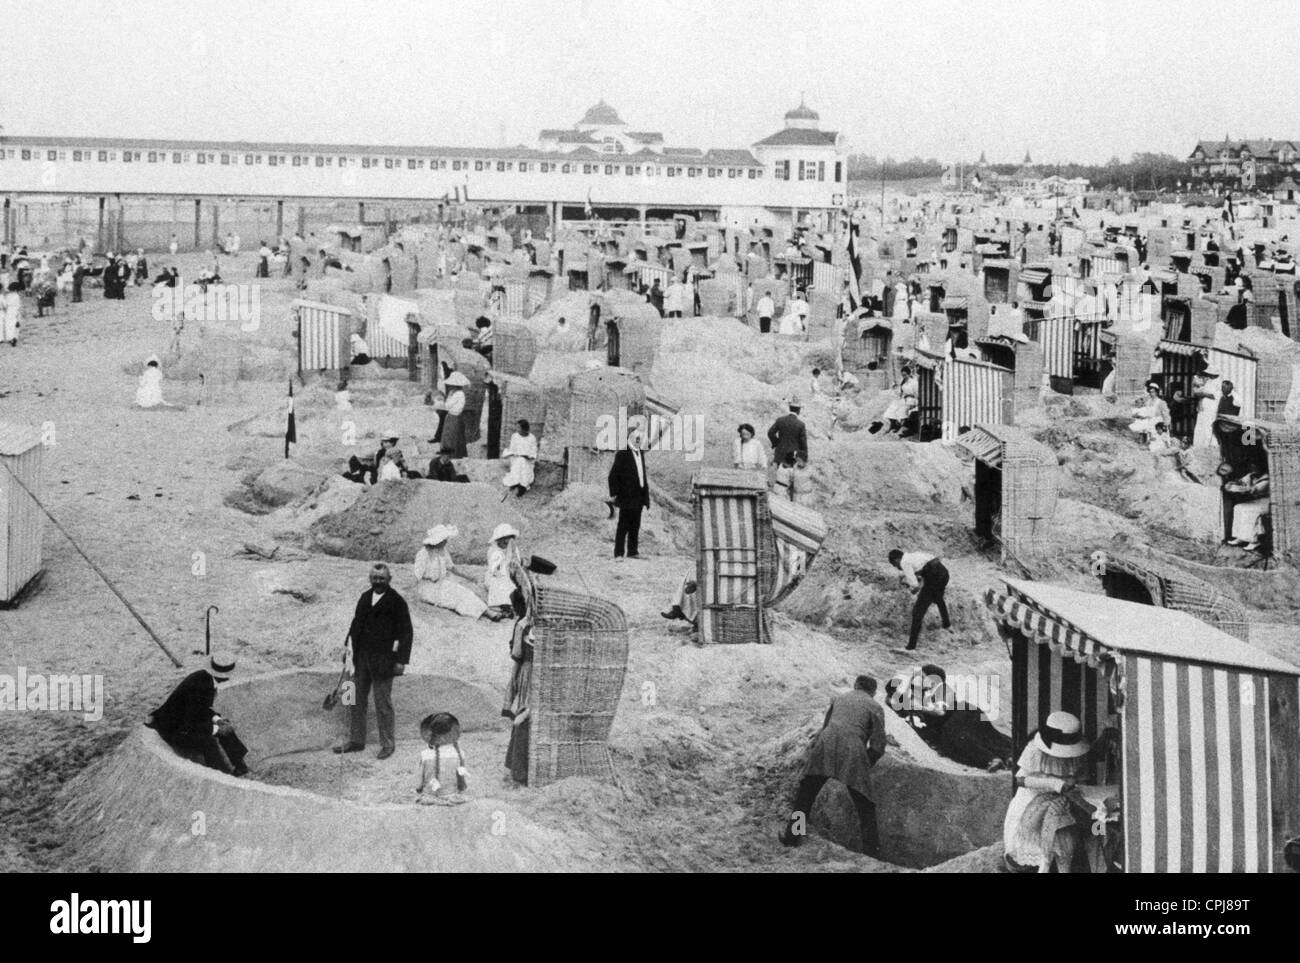 Beach life in the Baltic sea town of Swinoujscie, 1914 - Stock Image